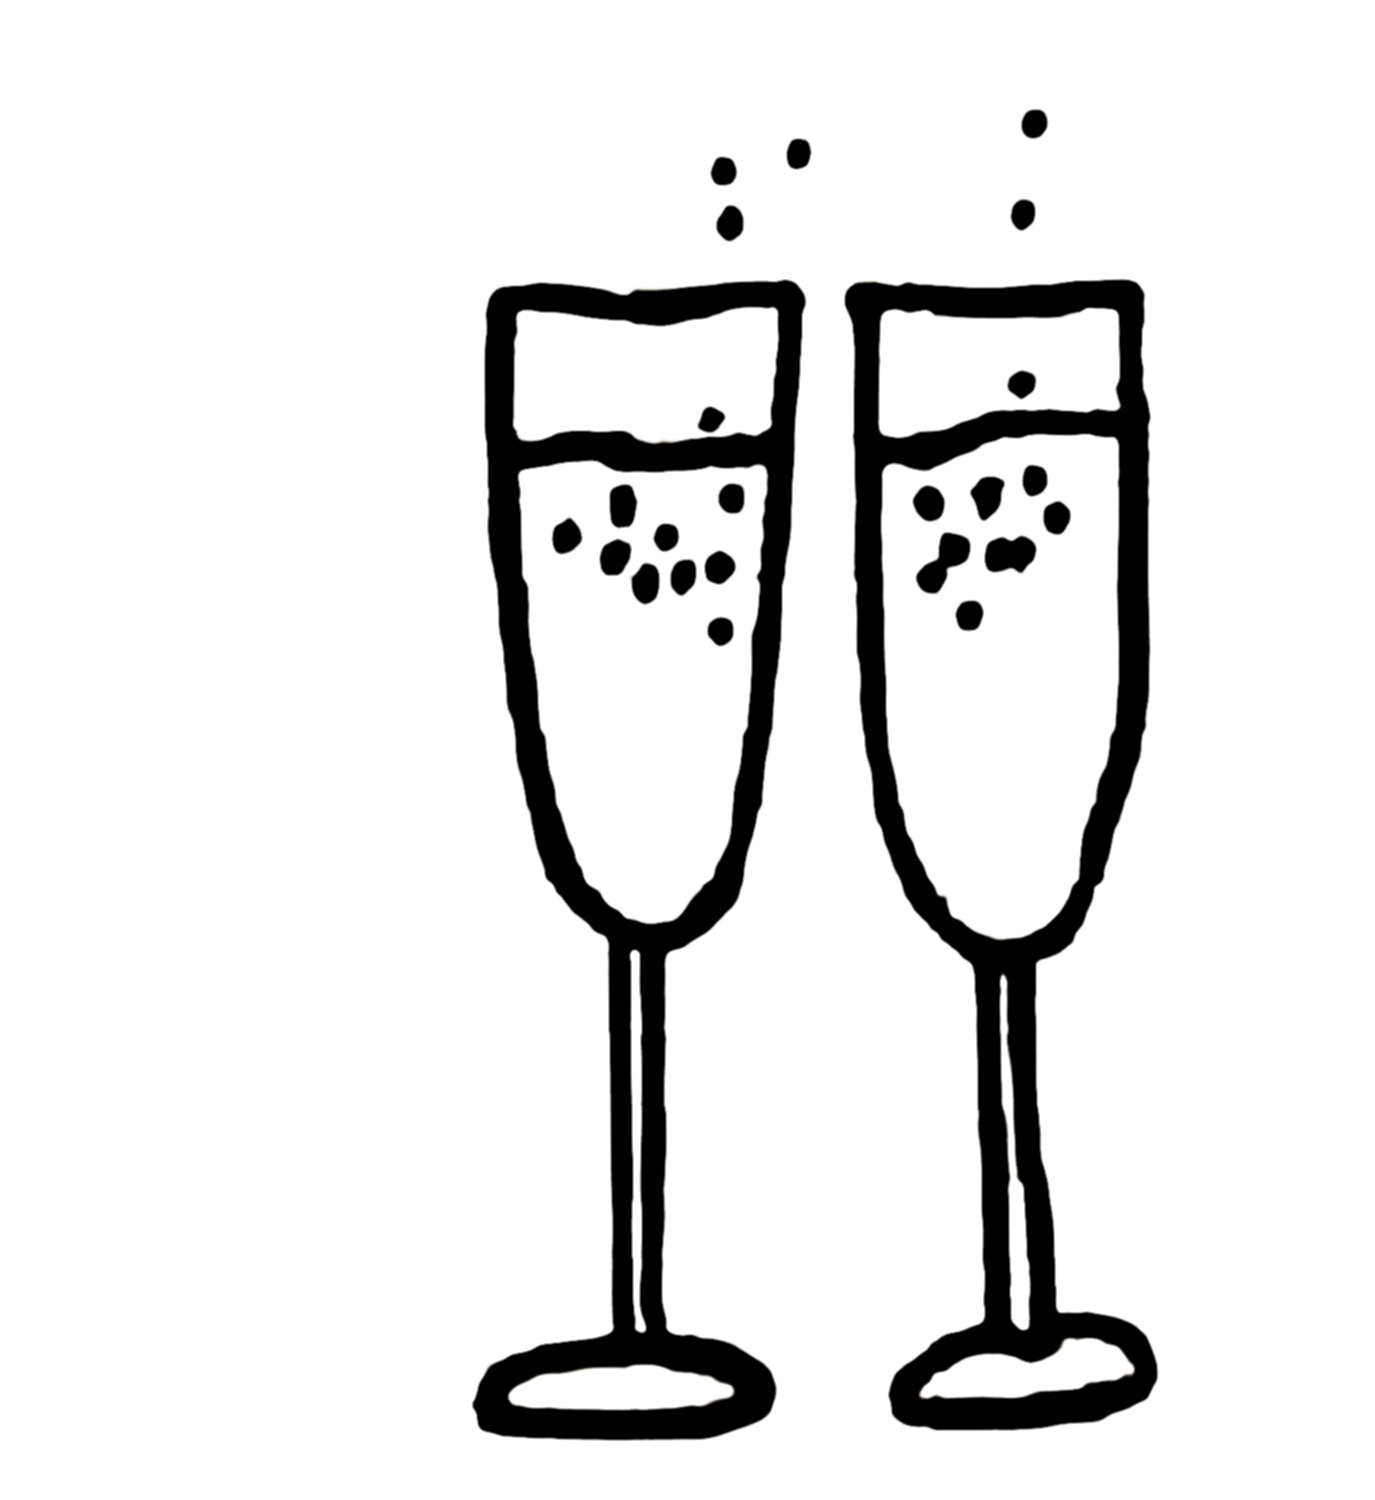 Champagne glass images clipart